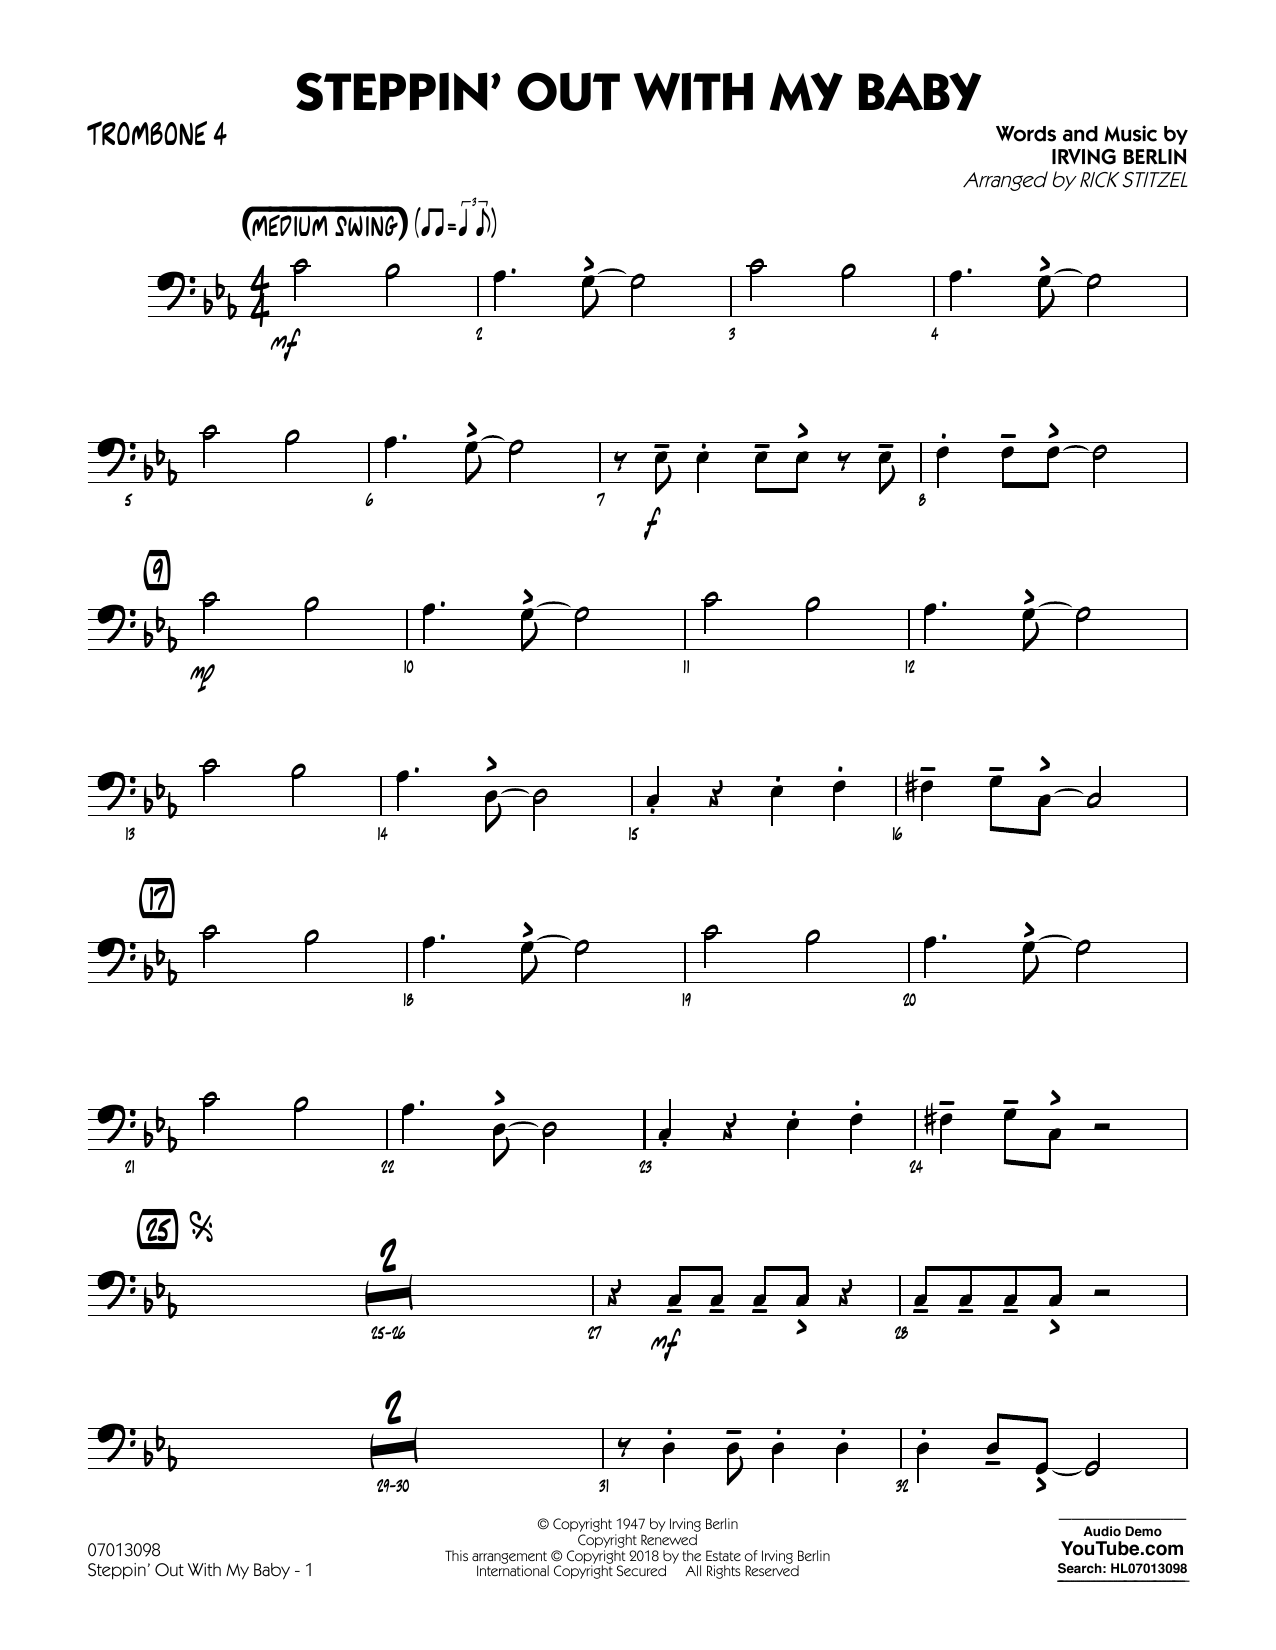 Rick Stitzel Steppin' Out with My Baby - Trombone 4 sheet music notes and chords. Download Printable PDF.